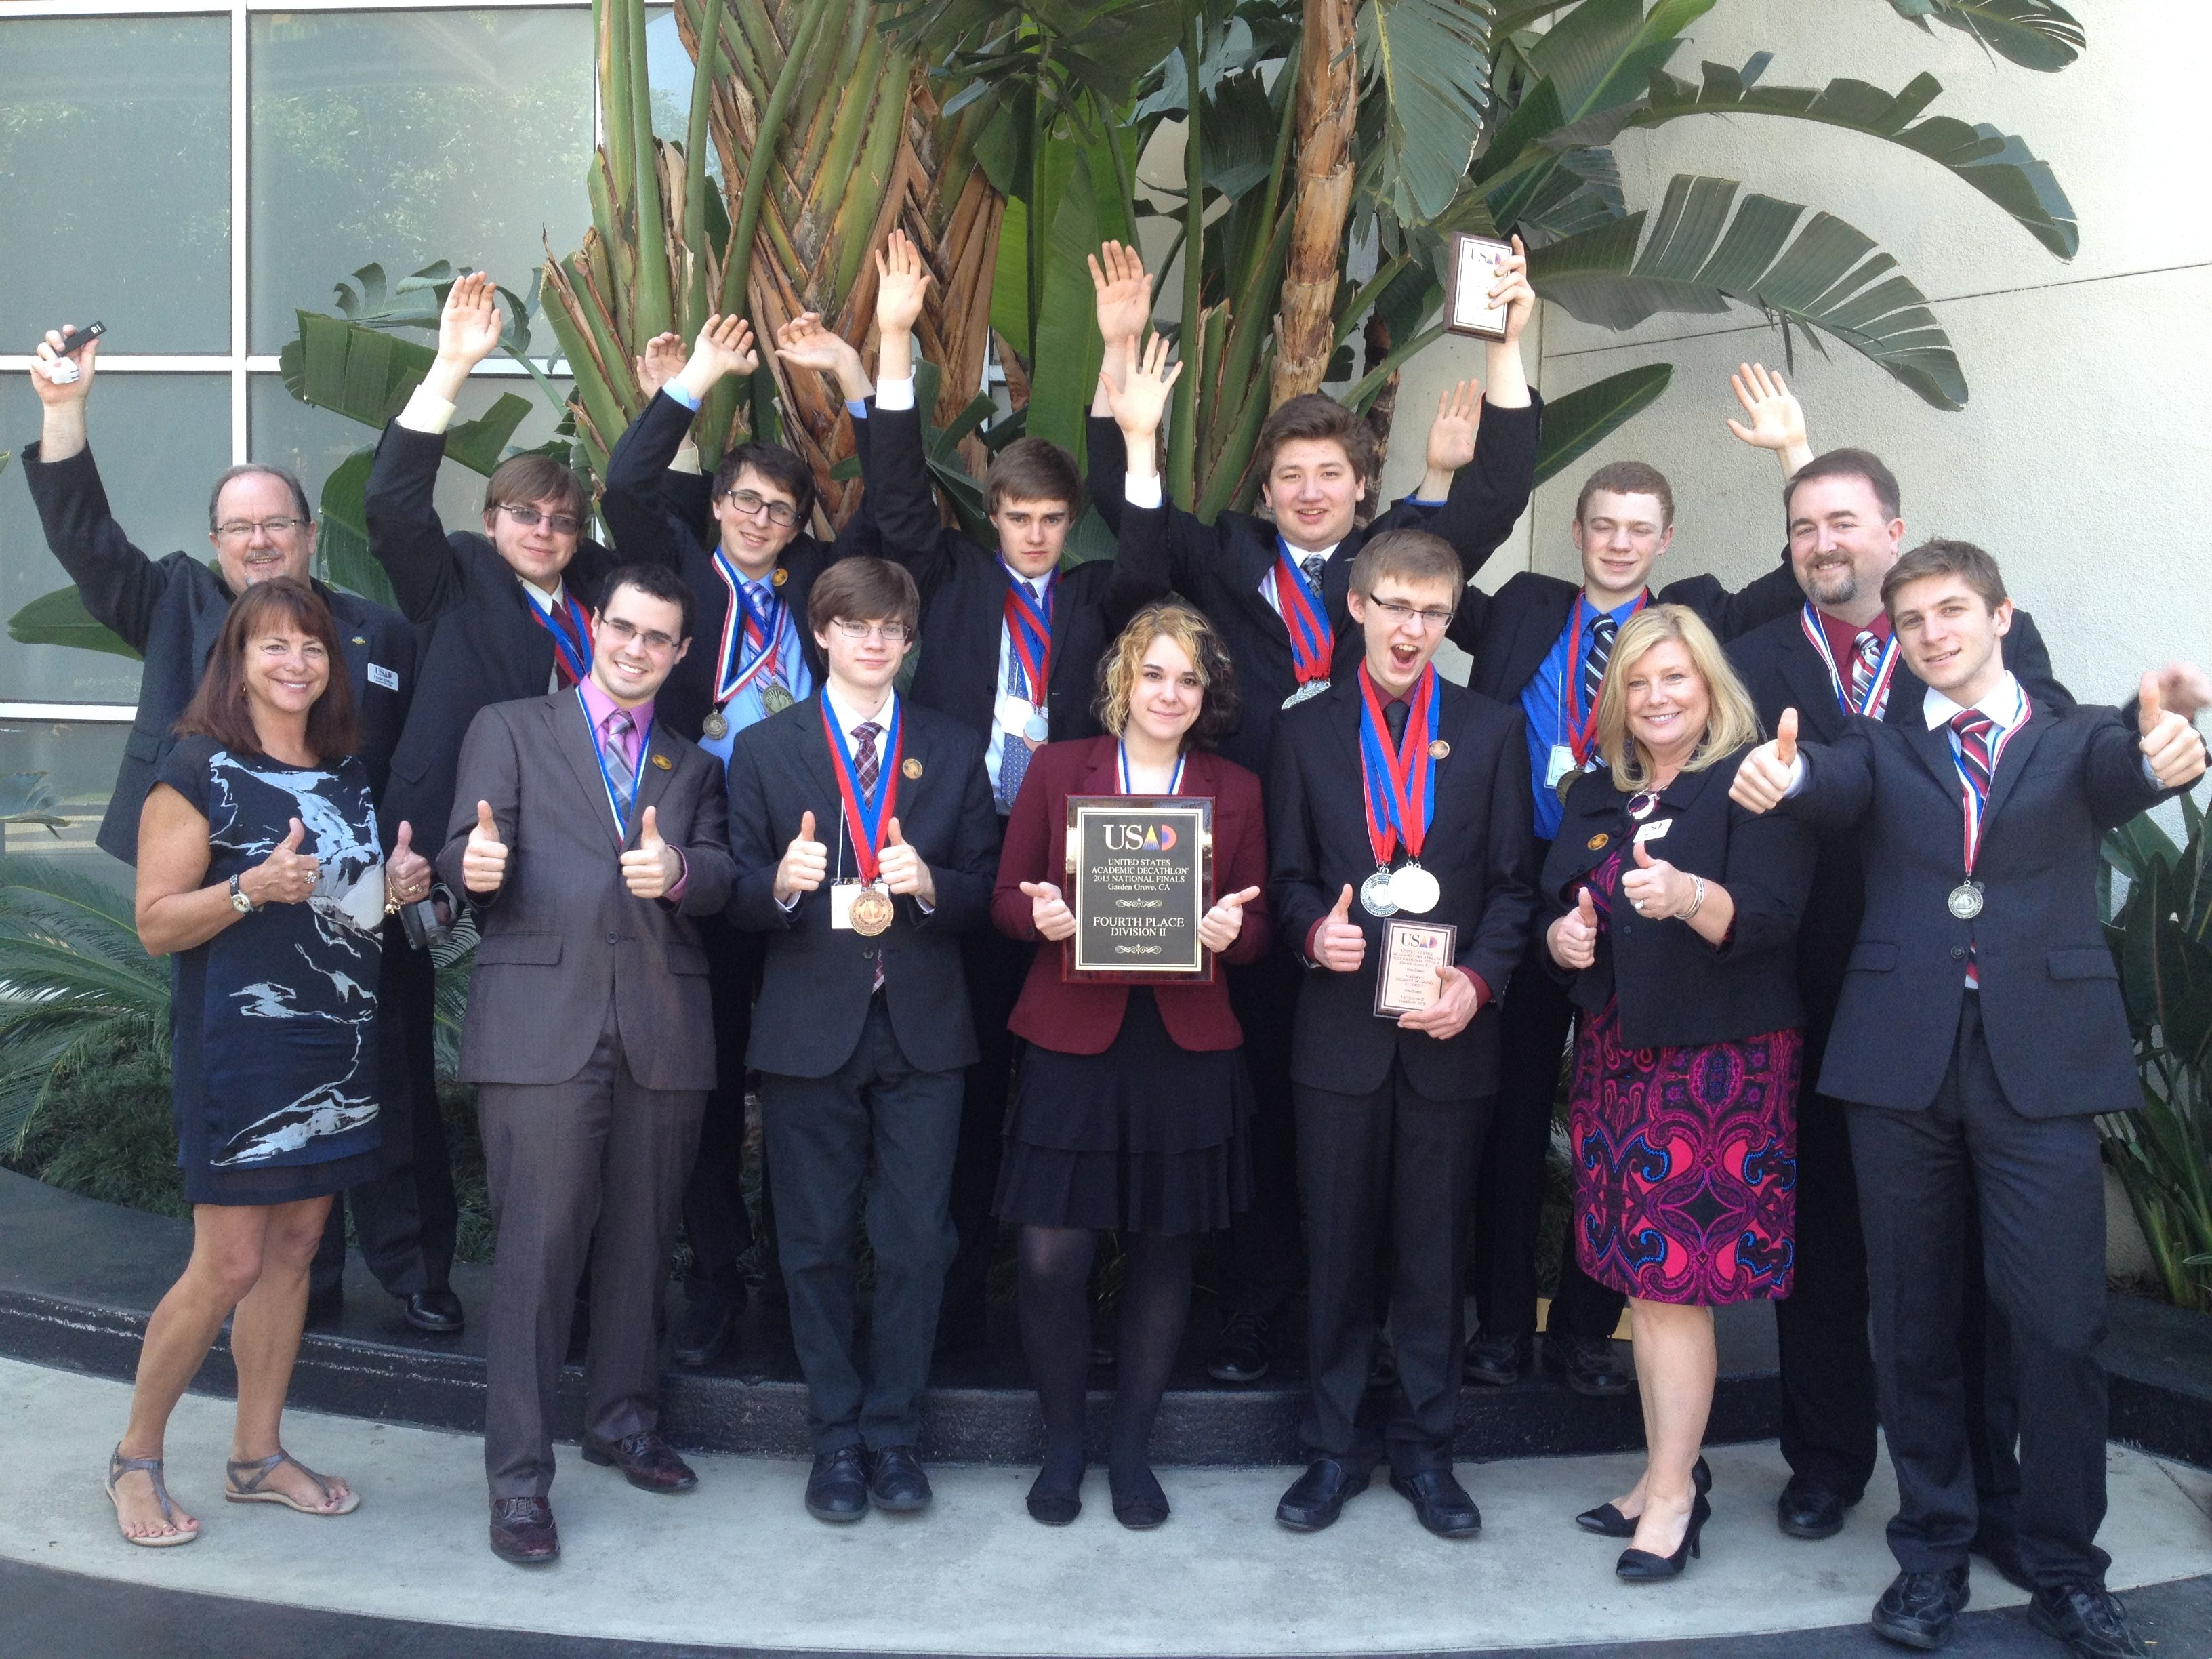 b850e4d91 GCI is a proud sponsor of the GCI Academic Decathlon. The 2015 State Champs  from